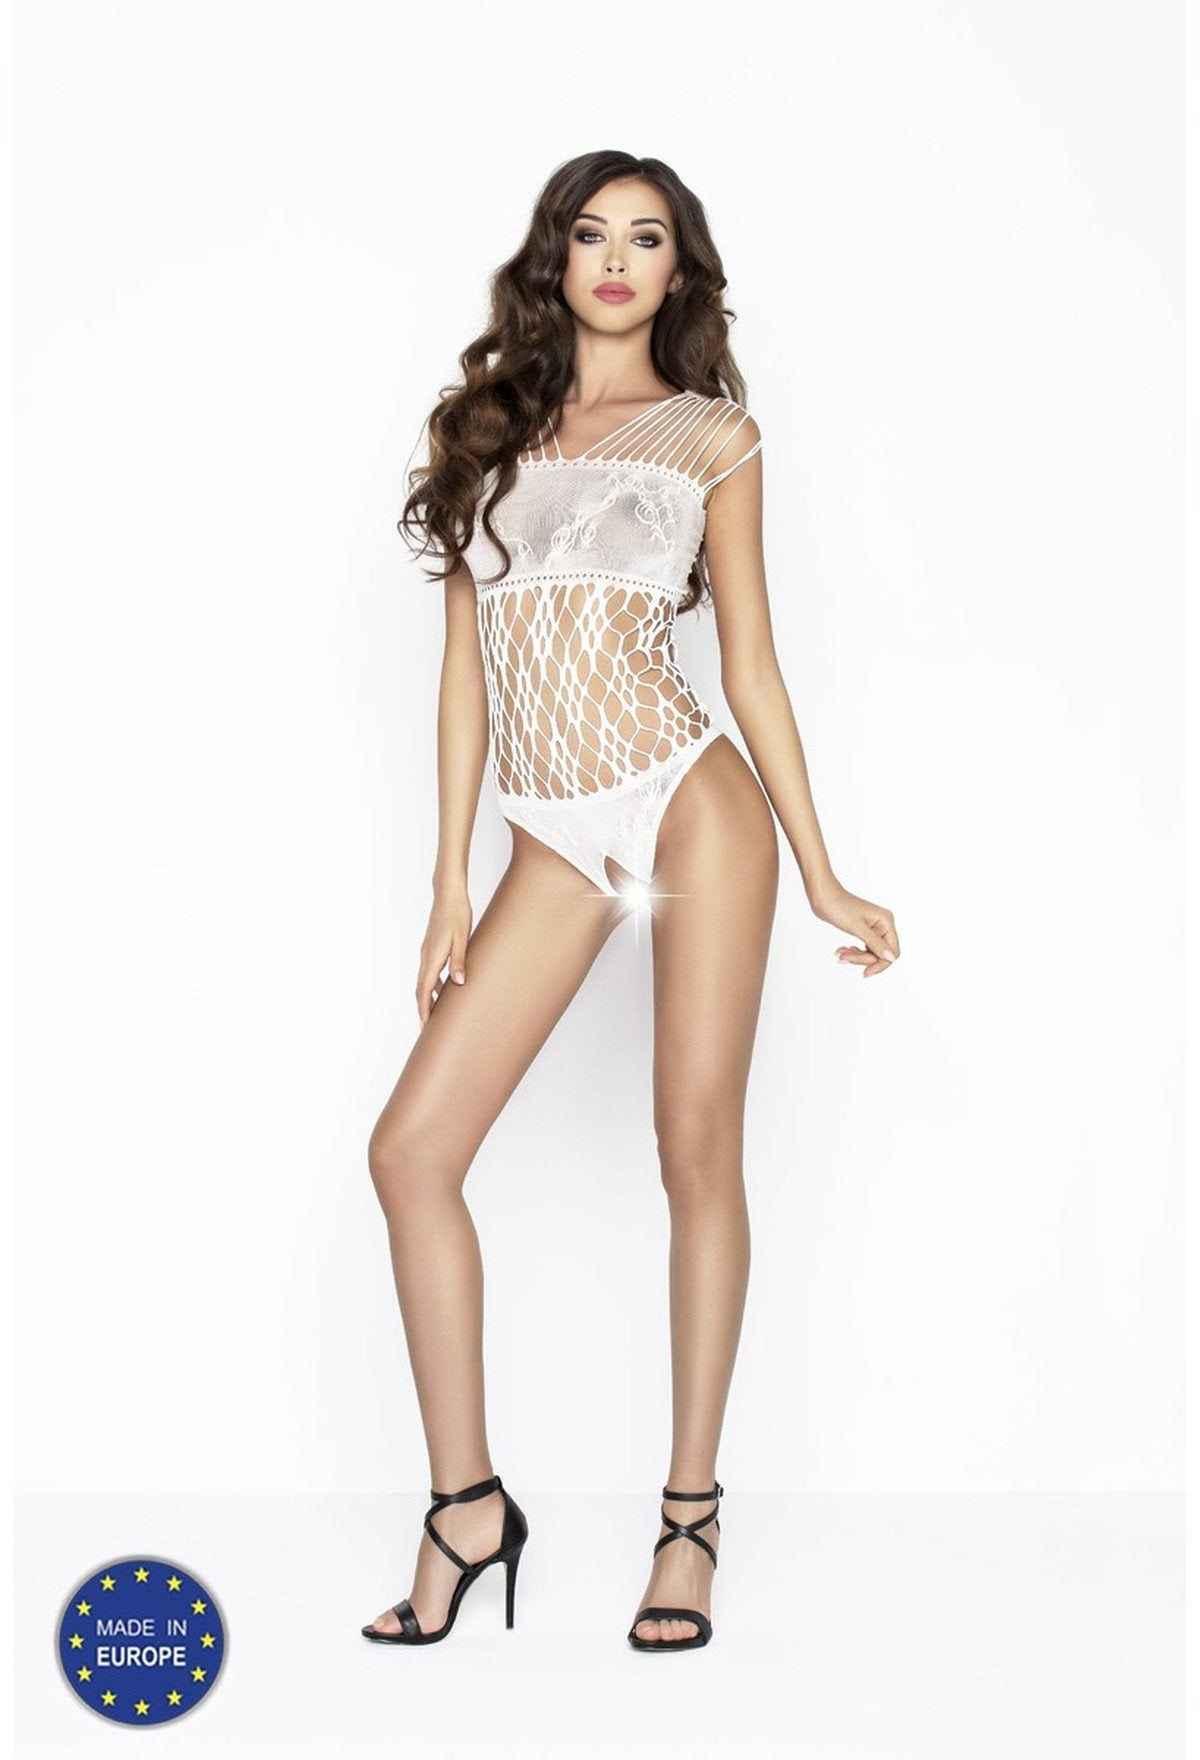 Passion White Crotchless Bodysuit